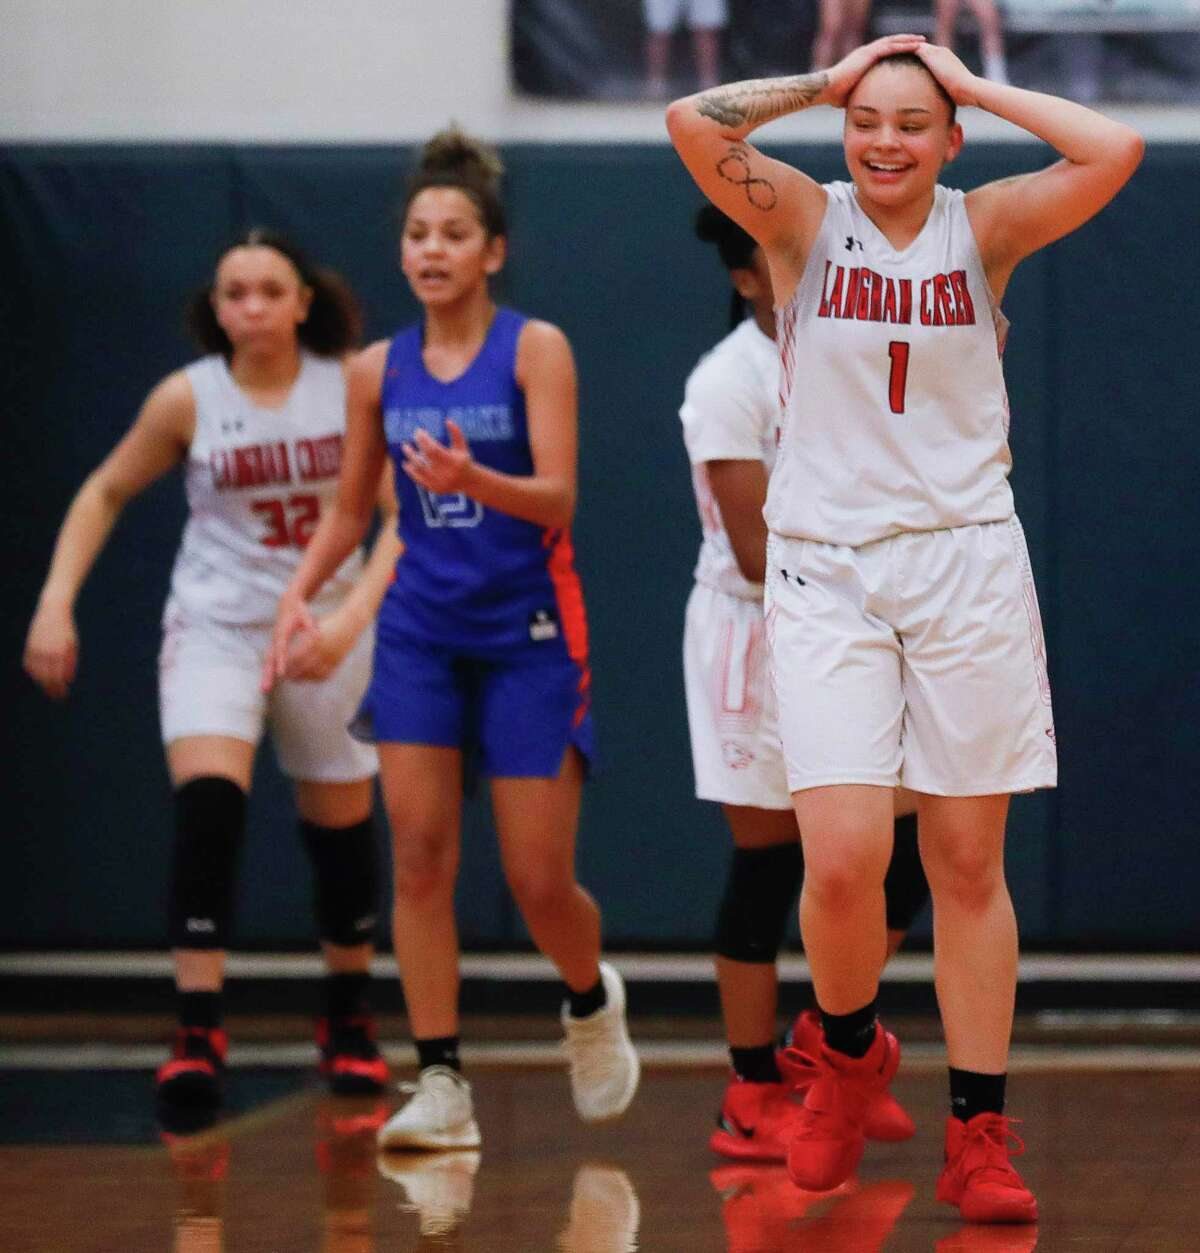 Langham Creek guard Brooklyn Hosford (1) reacts after a turnover call during the first quarter of a Region II-6A area girls basketball playoff game at Klein Collins High School, Saturday, Feb. 20, 2021, in Spring.